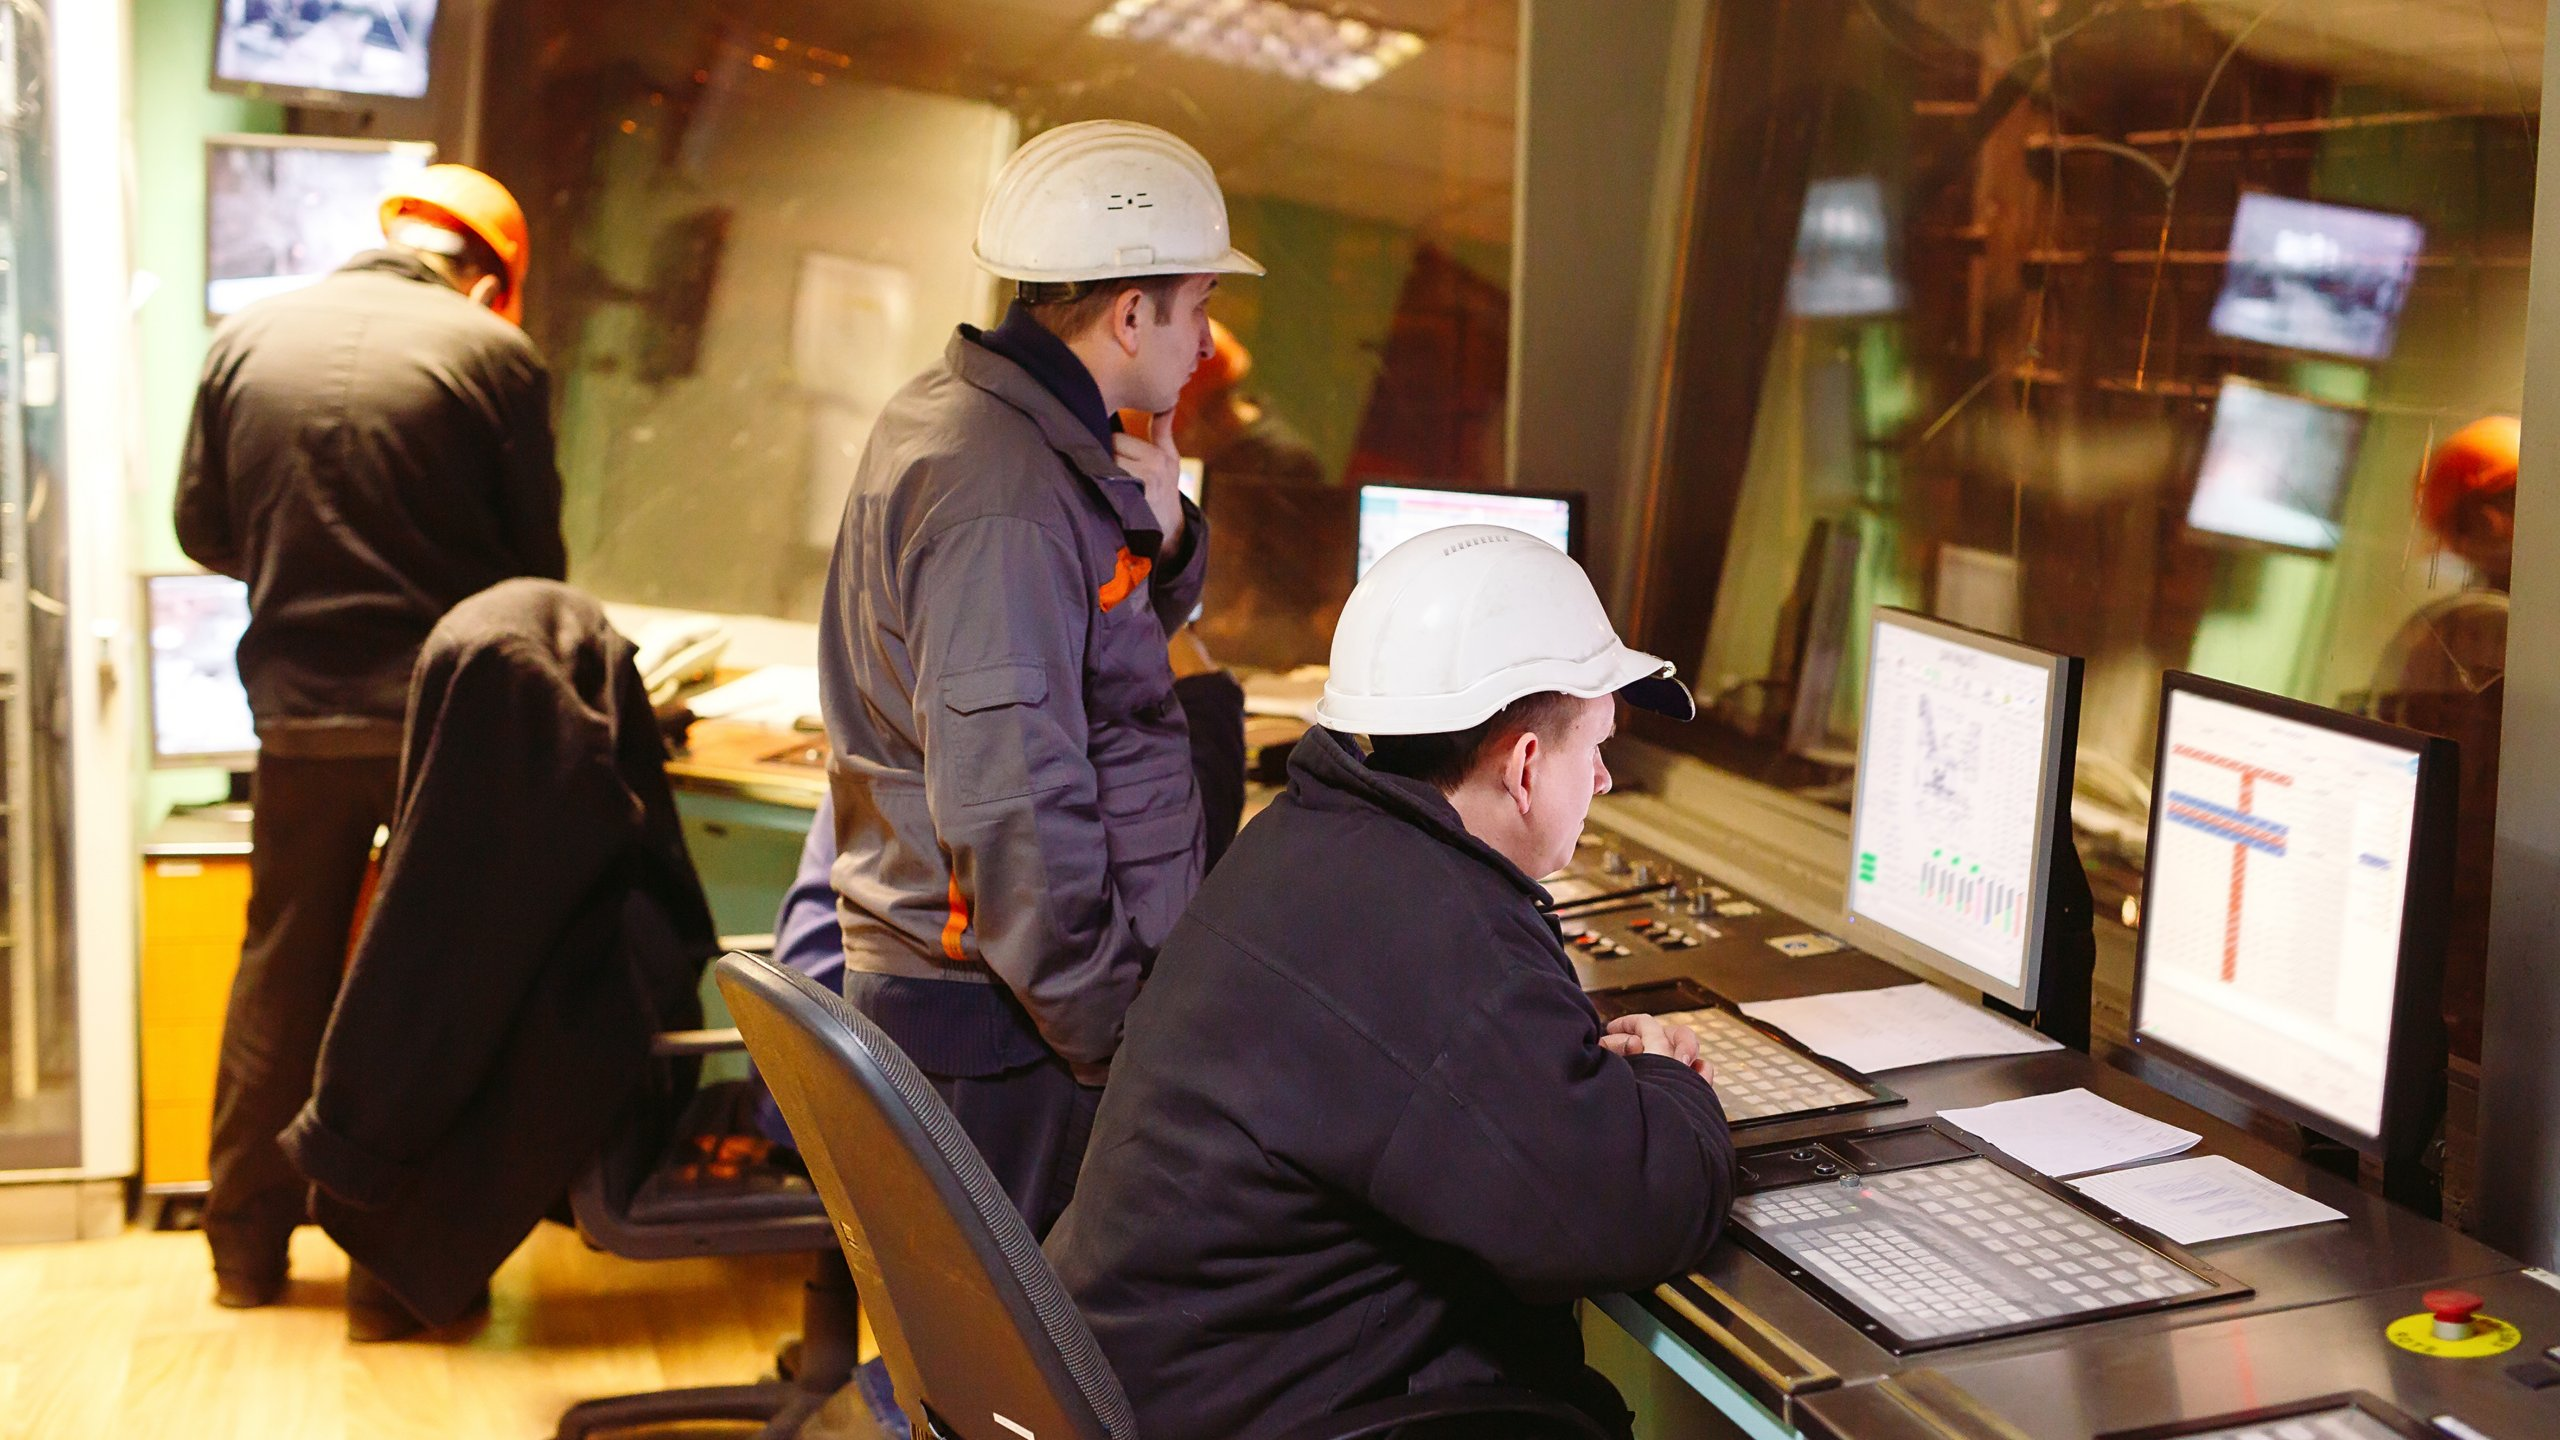 Employees at desk wearing hard hats viewing the plant floor and software on their laptops